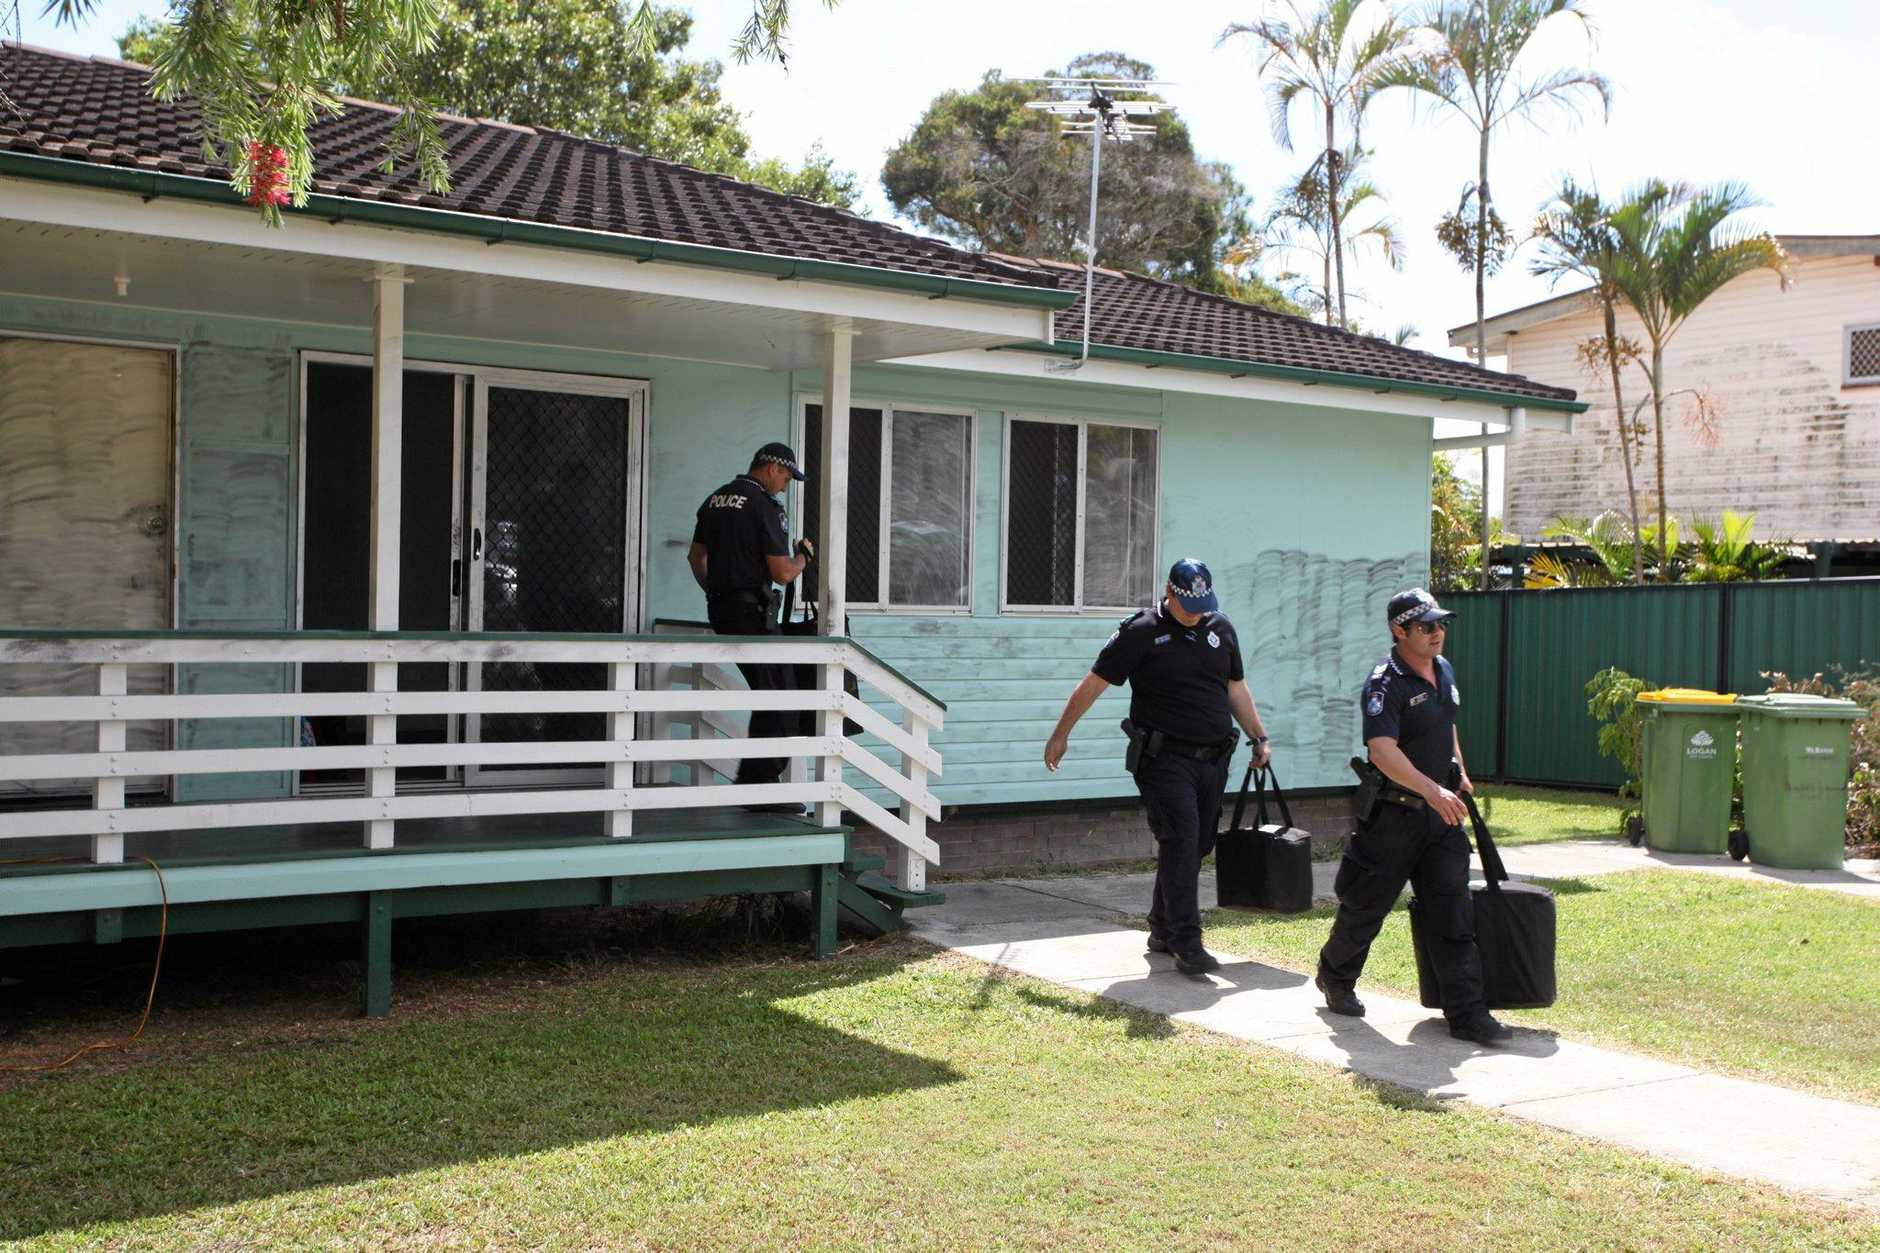 Police search the vacant Waterford West property believed to be linked to the disappearance and death of 12 year old Tiahleigh Palmer last year, for the third day.